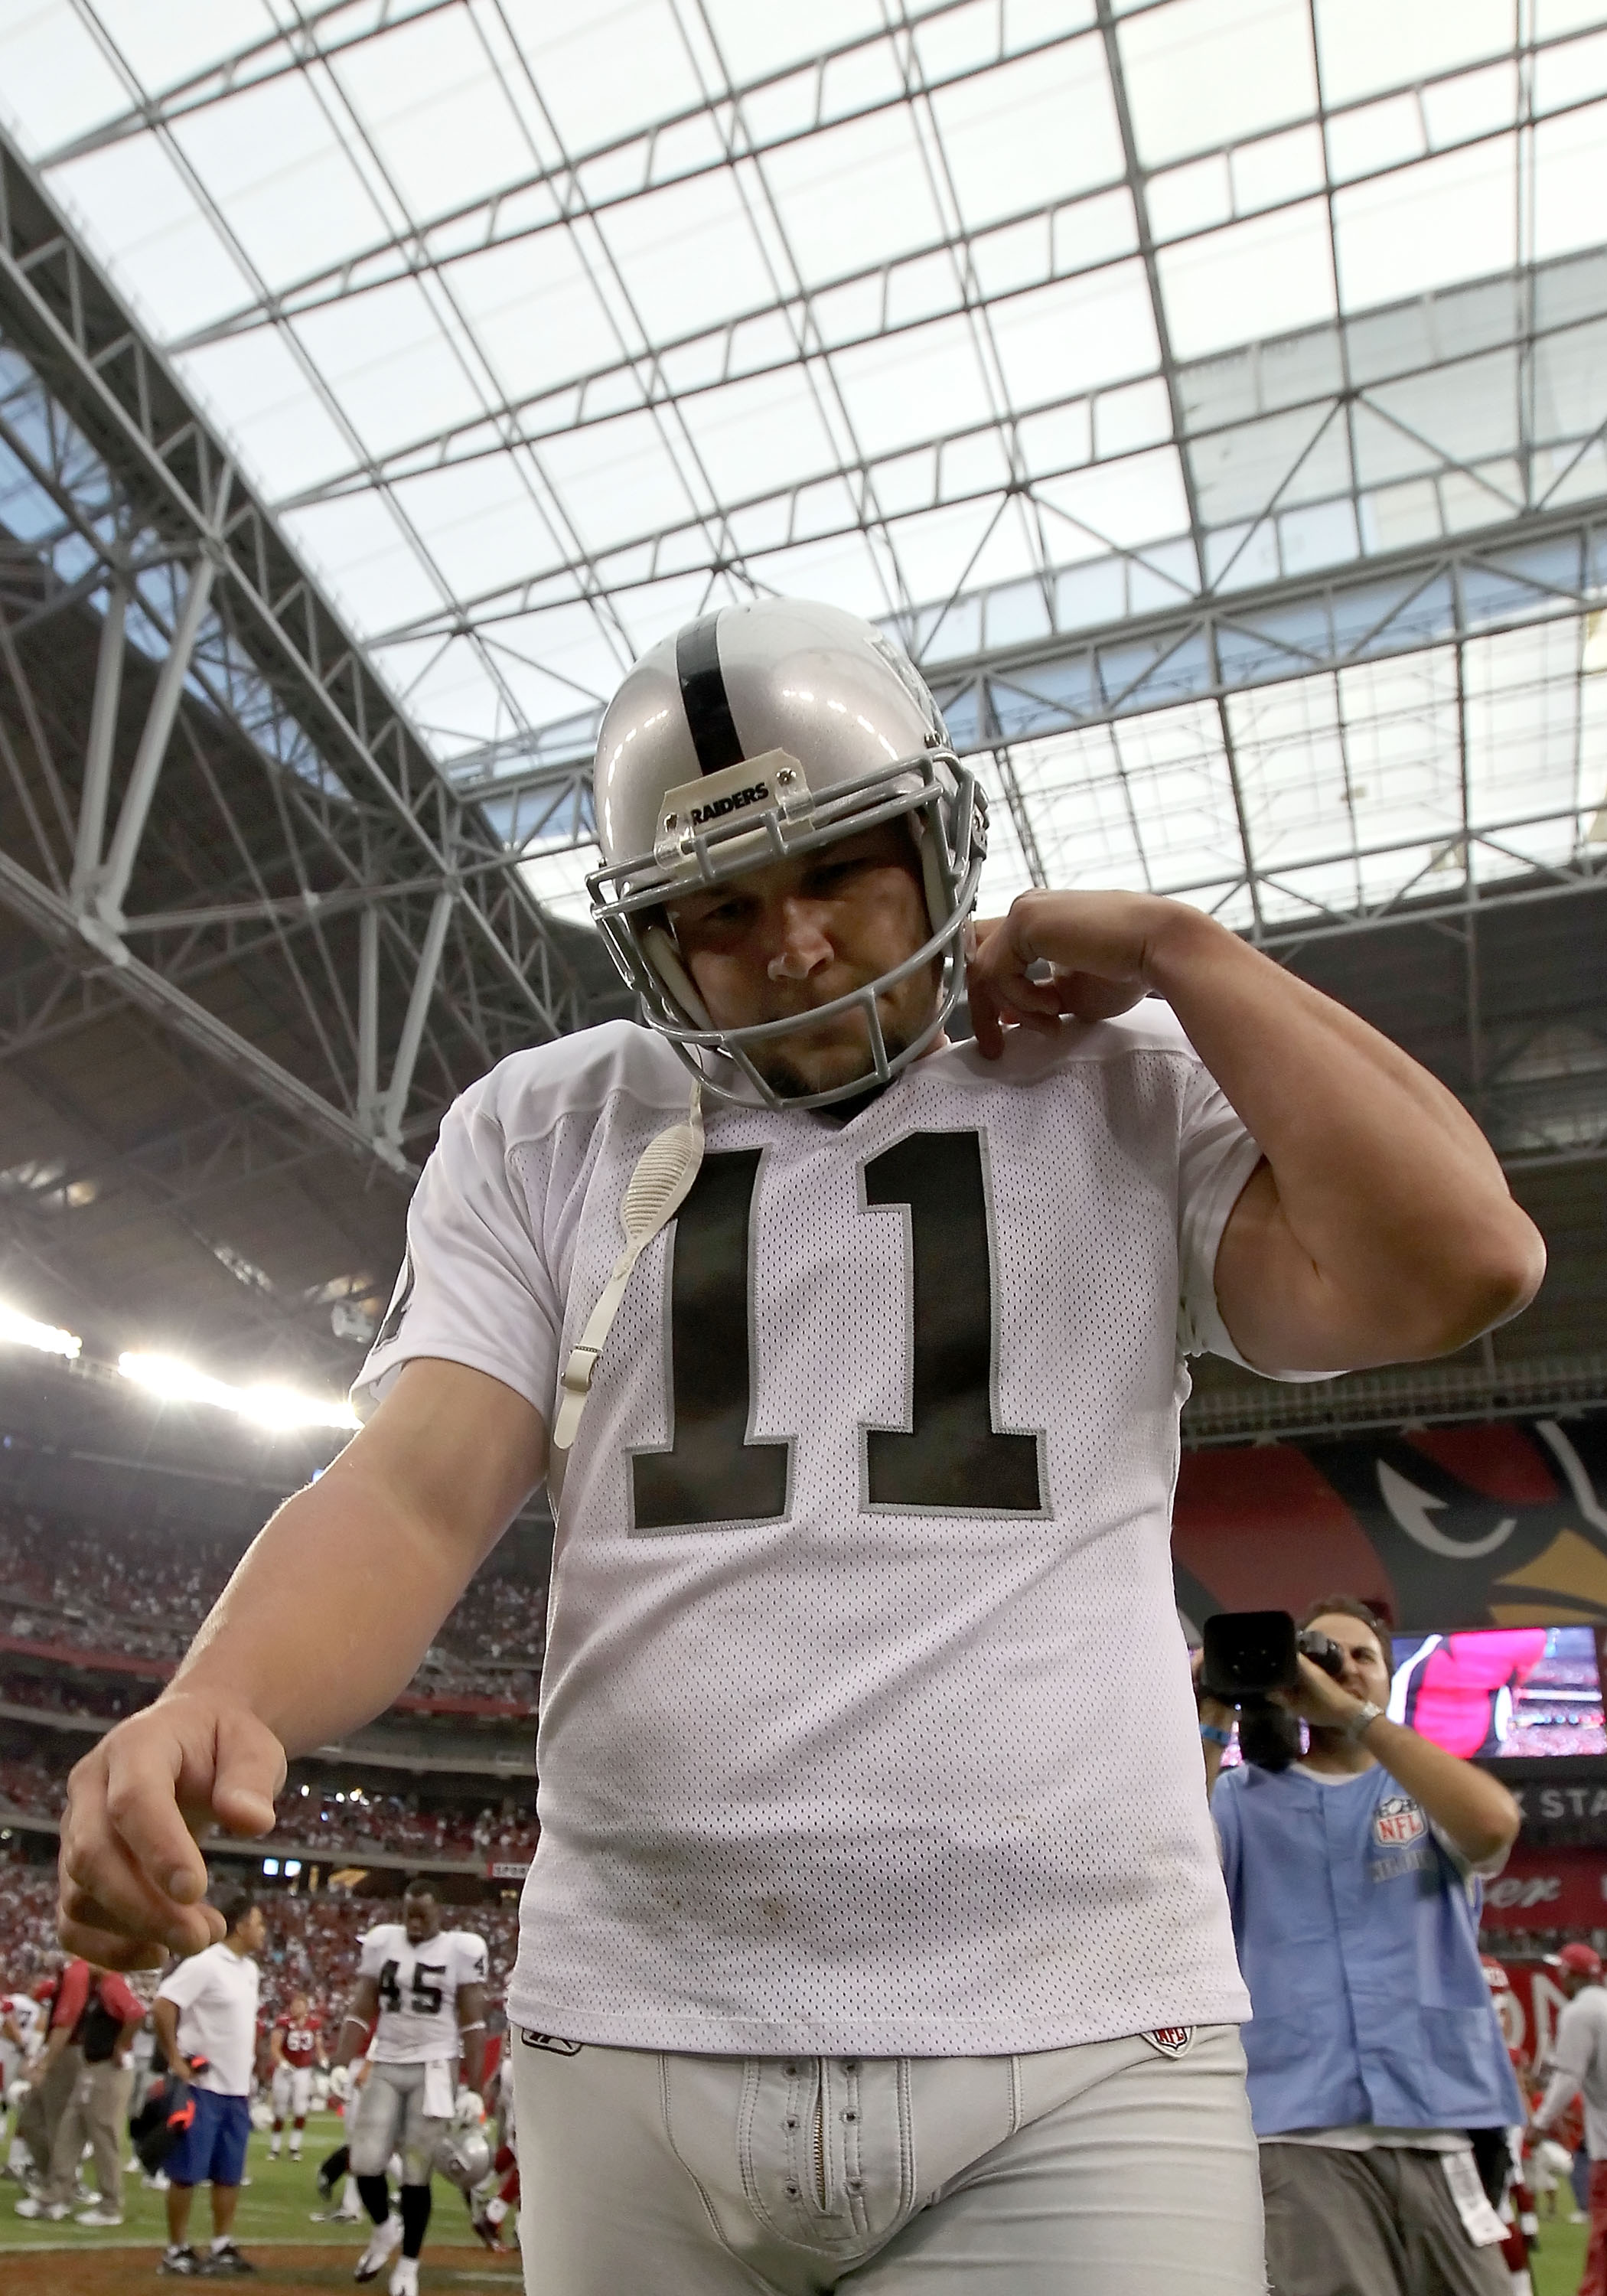 GLENDALE, AZ - SEPTEMBER 26:  Kicker Sebastian Janikowski #11 of the Oakland Raiders walks off the field after missing the game winning 32 yard field goal against the Arizona Cardinals during the NFL game at the University of Phoenix Stadium on September